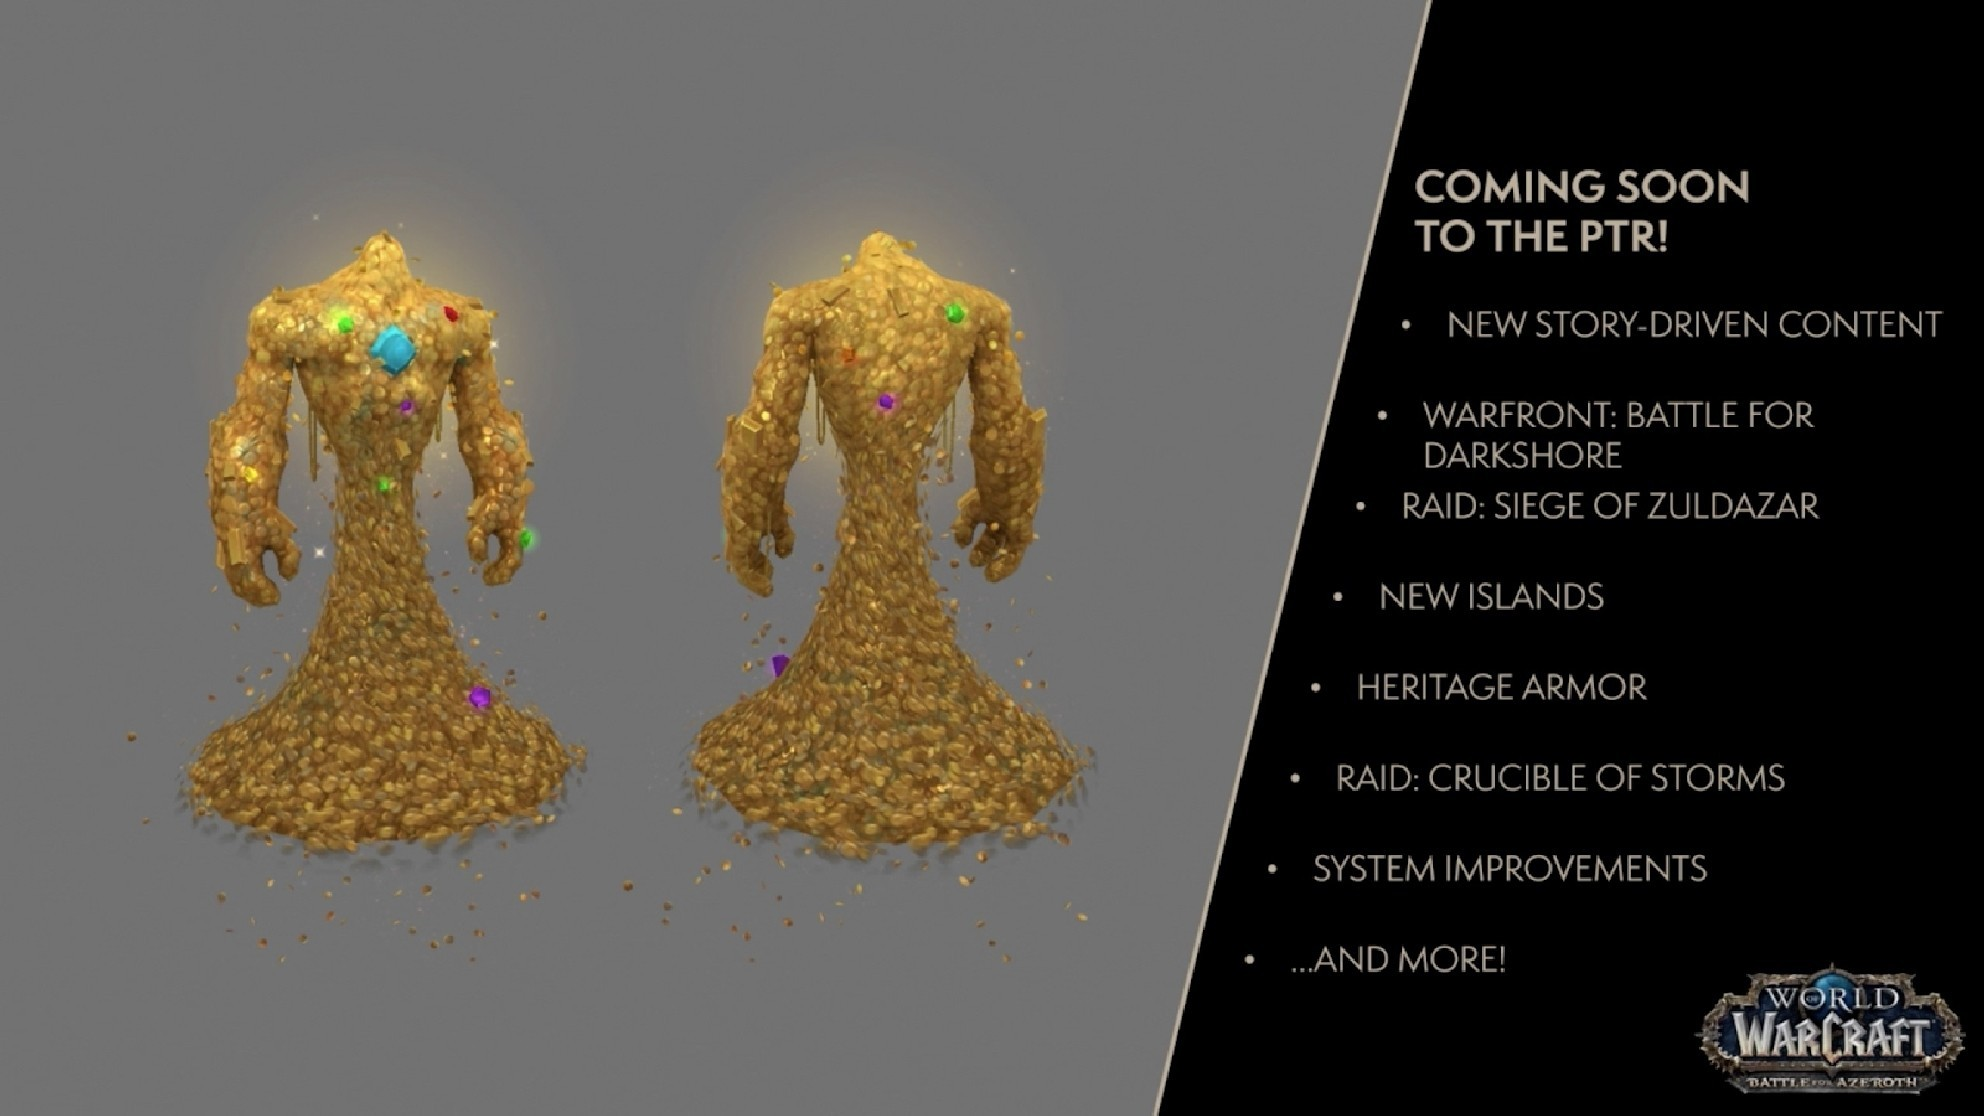 Upcoming WoW content revealed